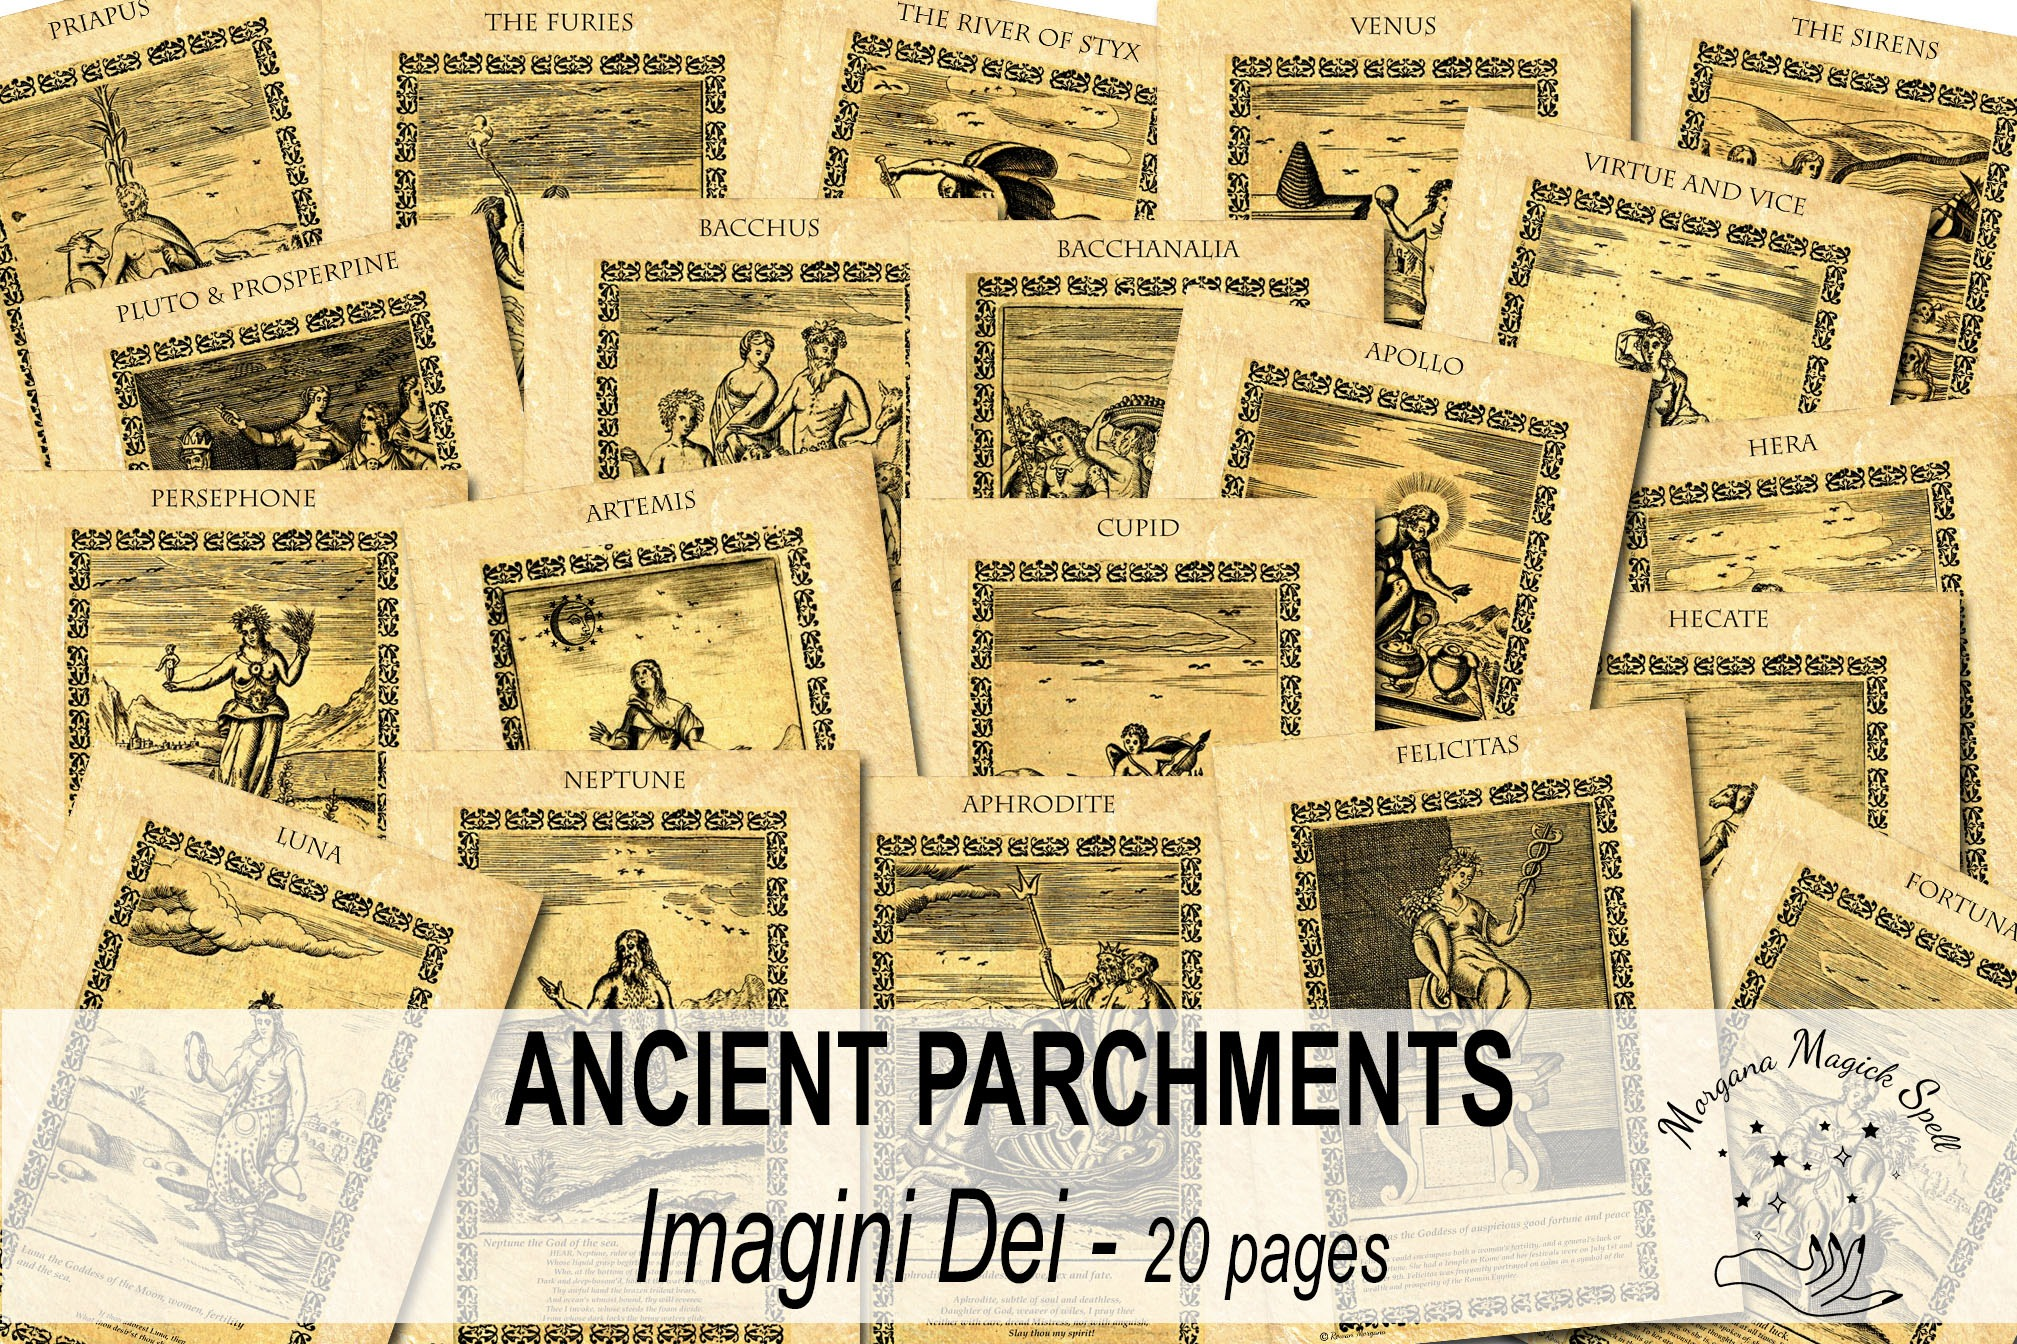 IMAGINI DEI - Ancient Images of the Gods